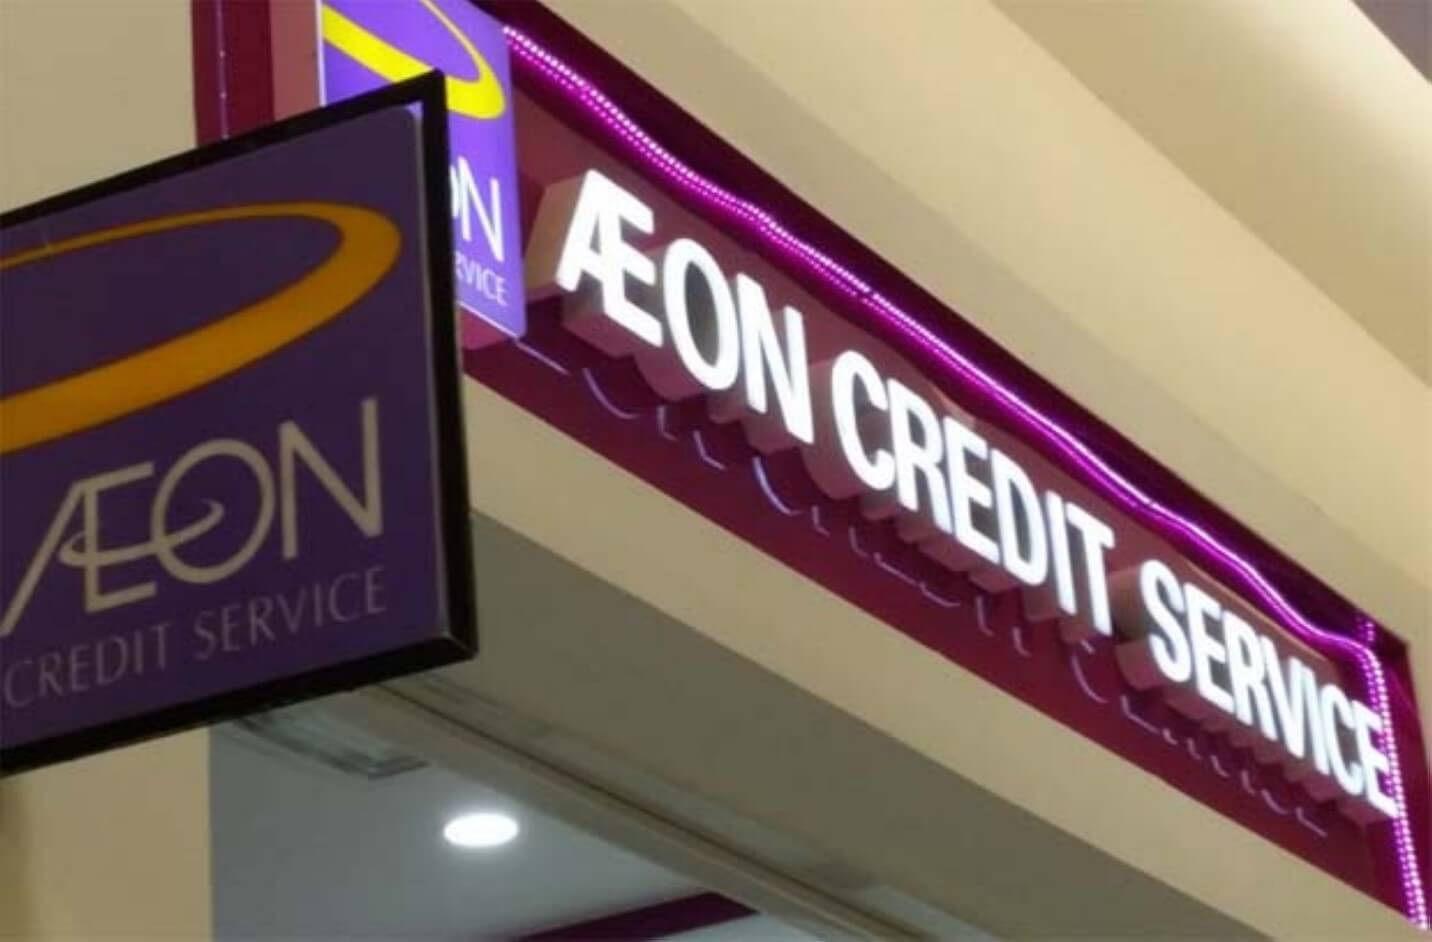 Aeon Credit said the eKYC enables companies to analyse, verify and authenticate individuals' identity in real time.